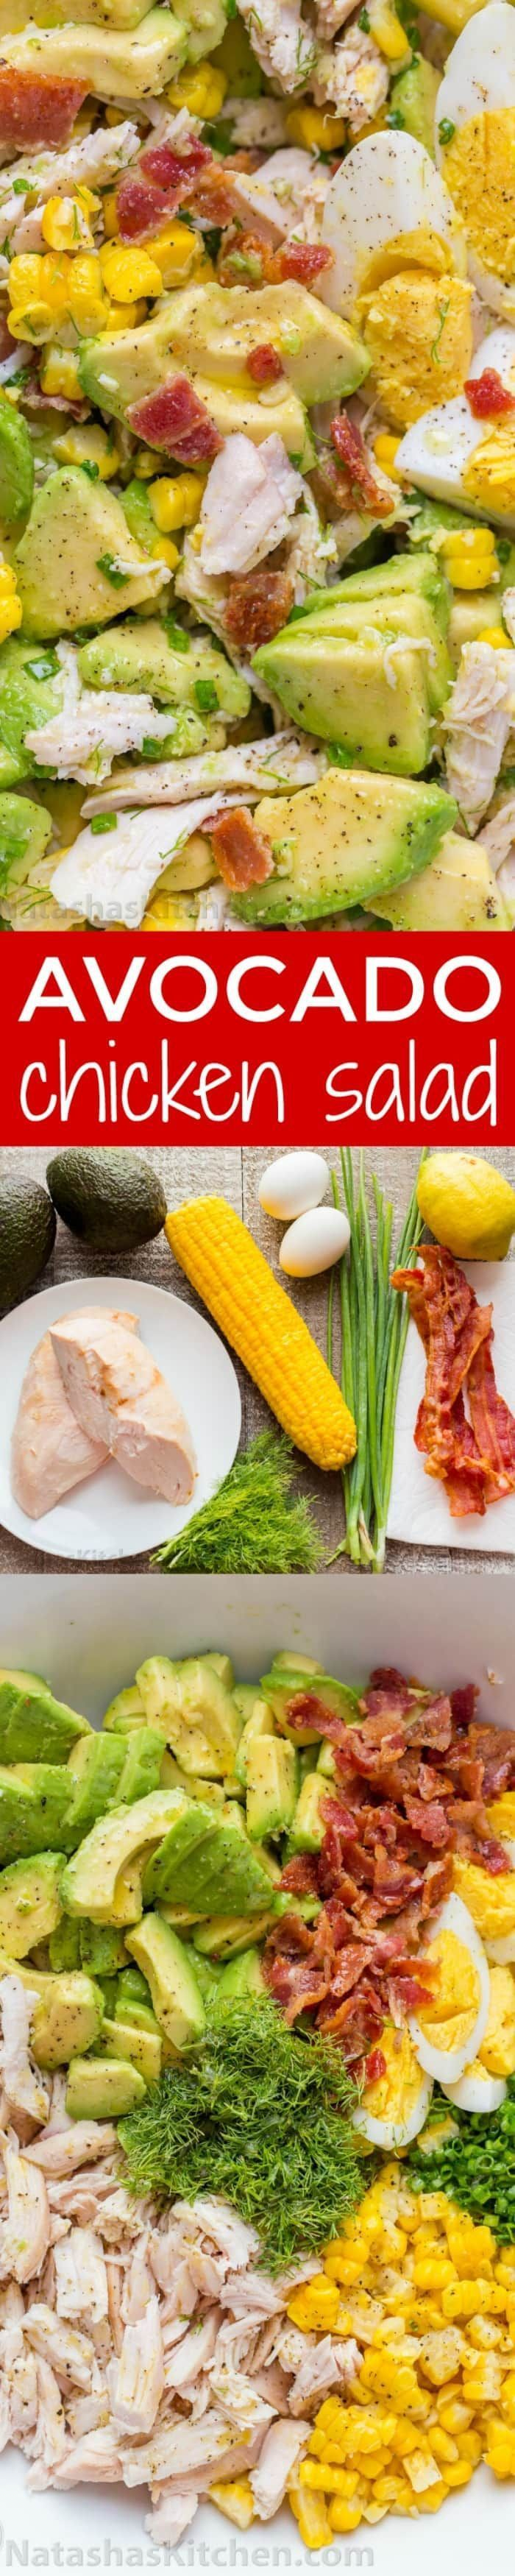 This Avocado Chicken Salad recipe is a keeper! Easy excellent chicken salad with lemon dressing pl